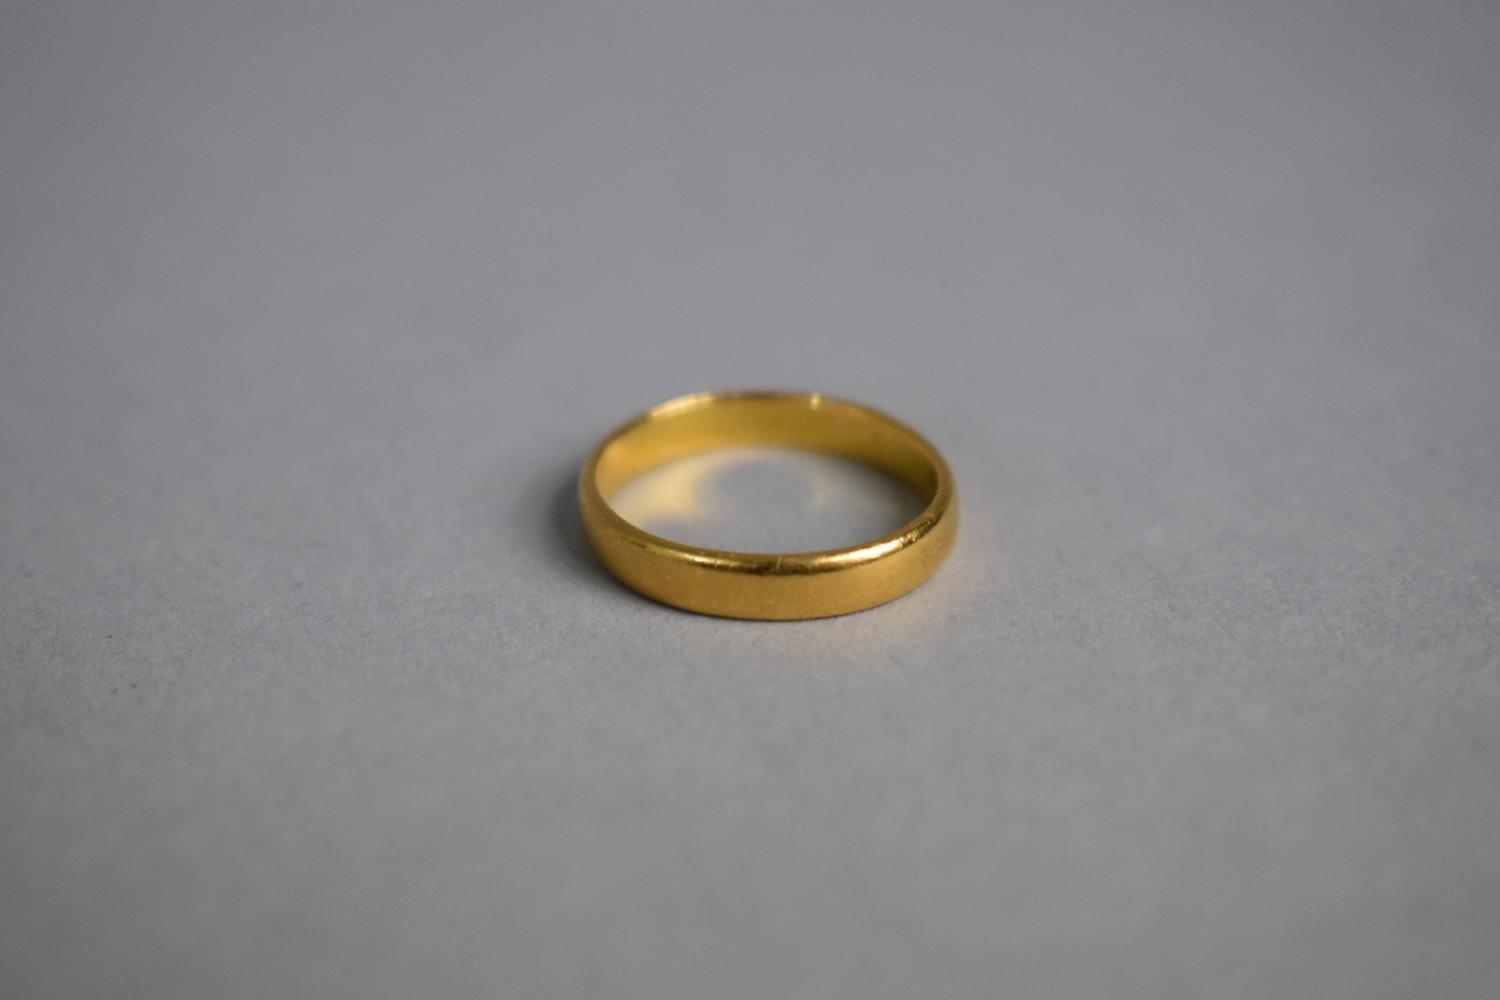 Lot 315 - A Small 22ct Gold Wedding Band, Size G, 2gms.